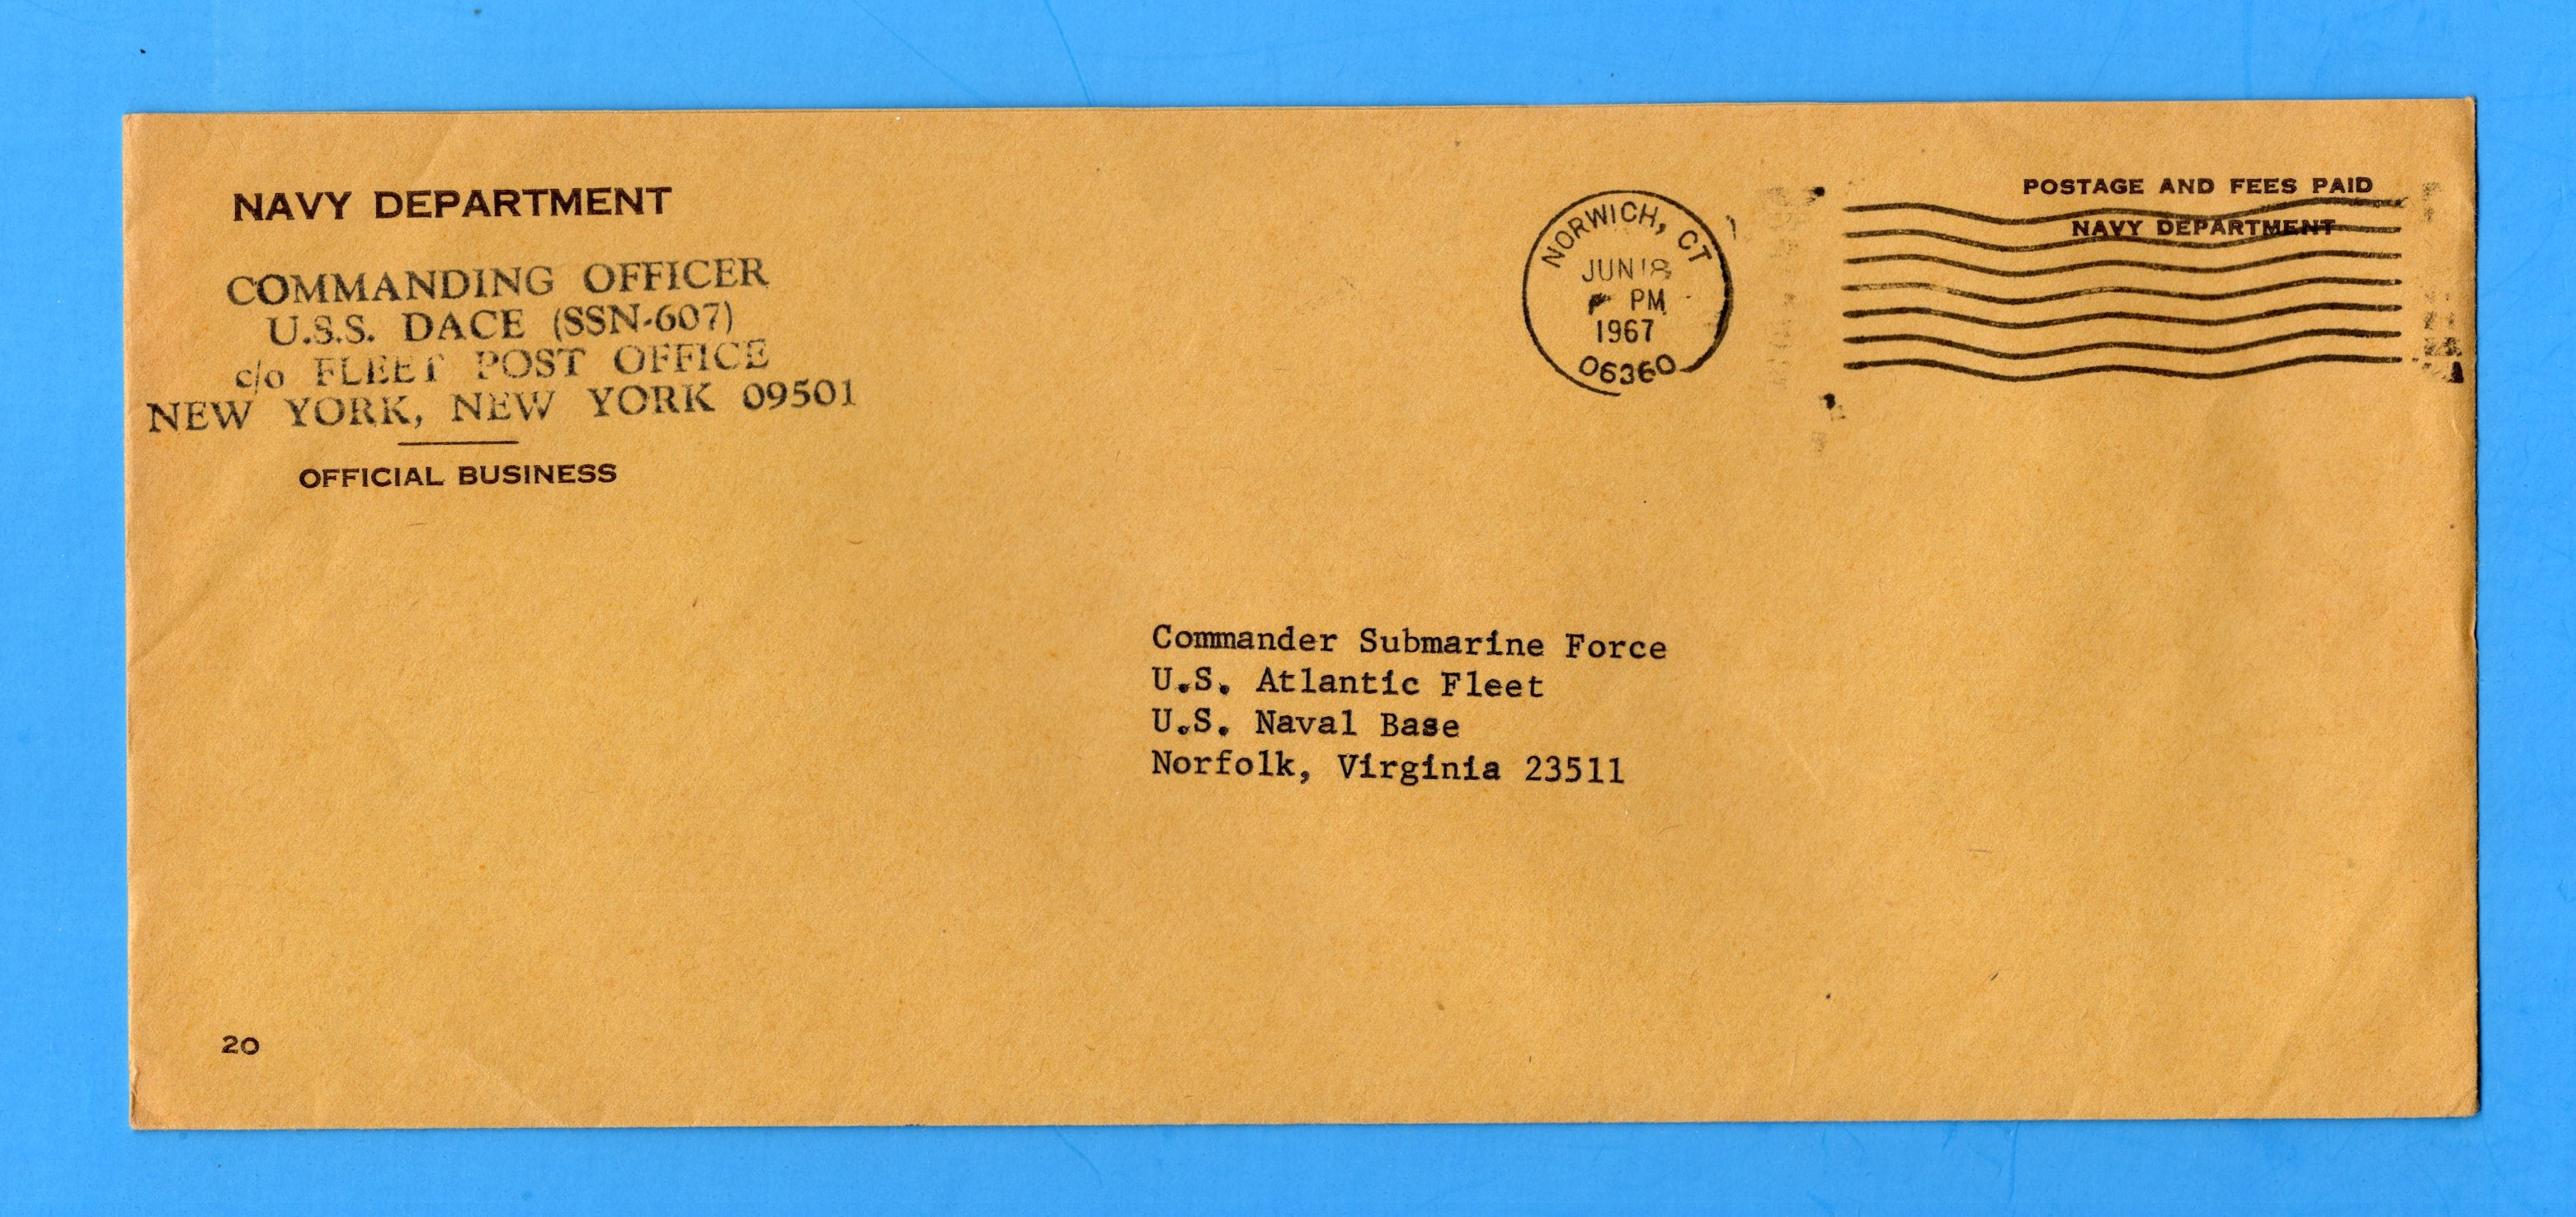 USS Dace SSN-607 Navy Department Official Mail June 18, 1967